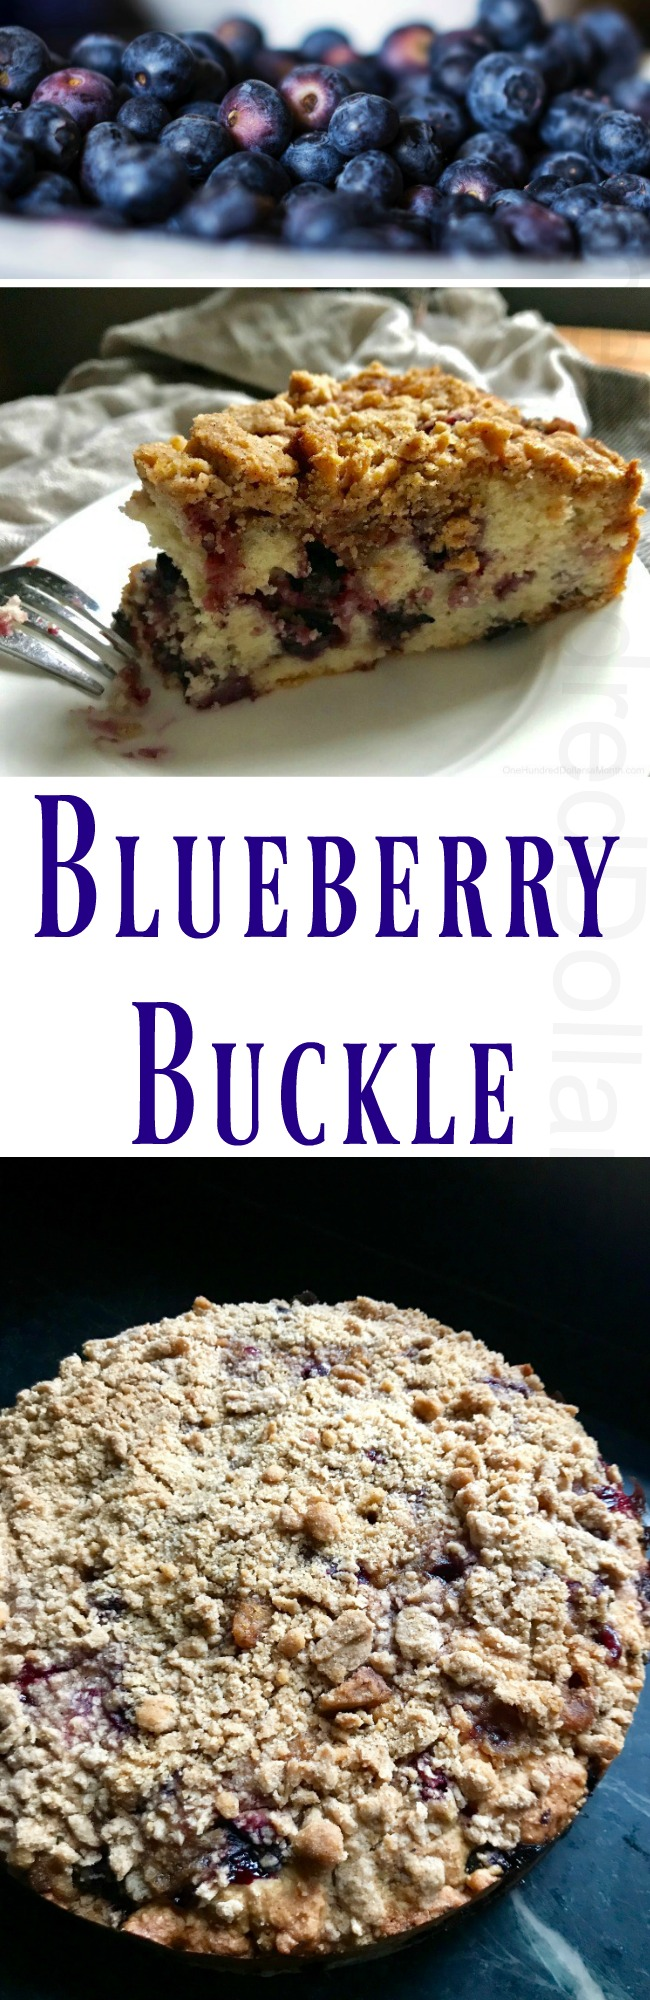 Sunday Brunch Recipes – Blueberry Buckle